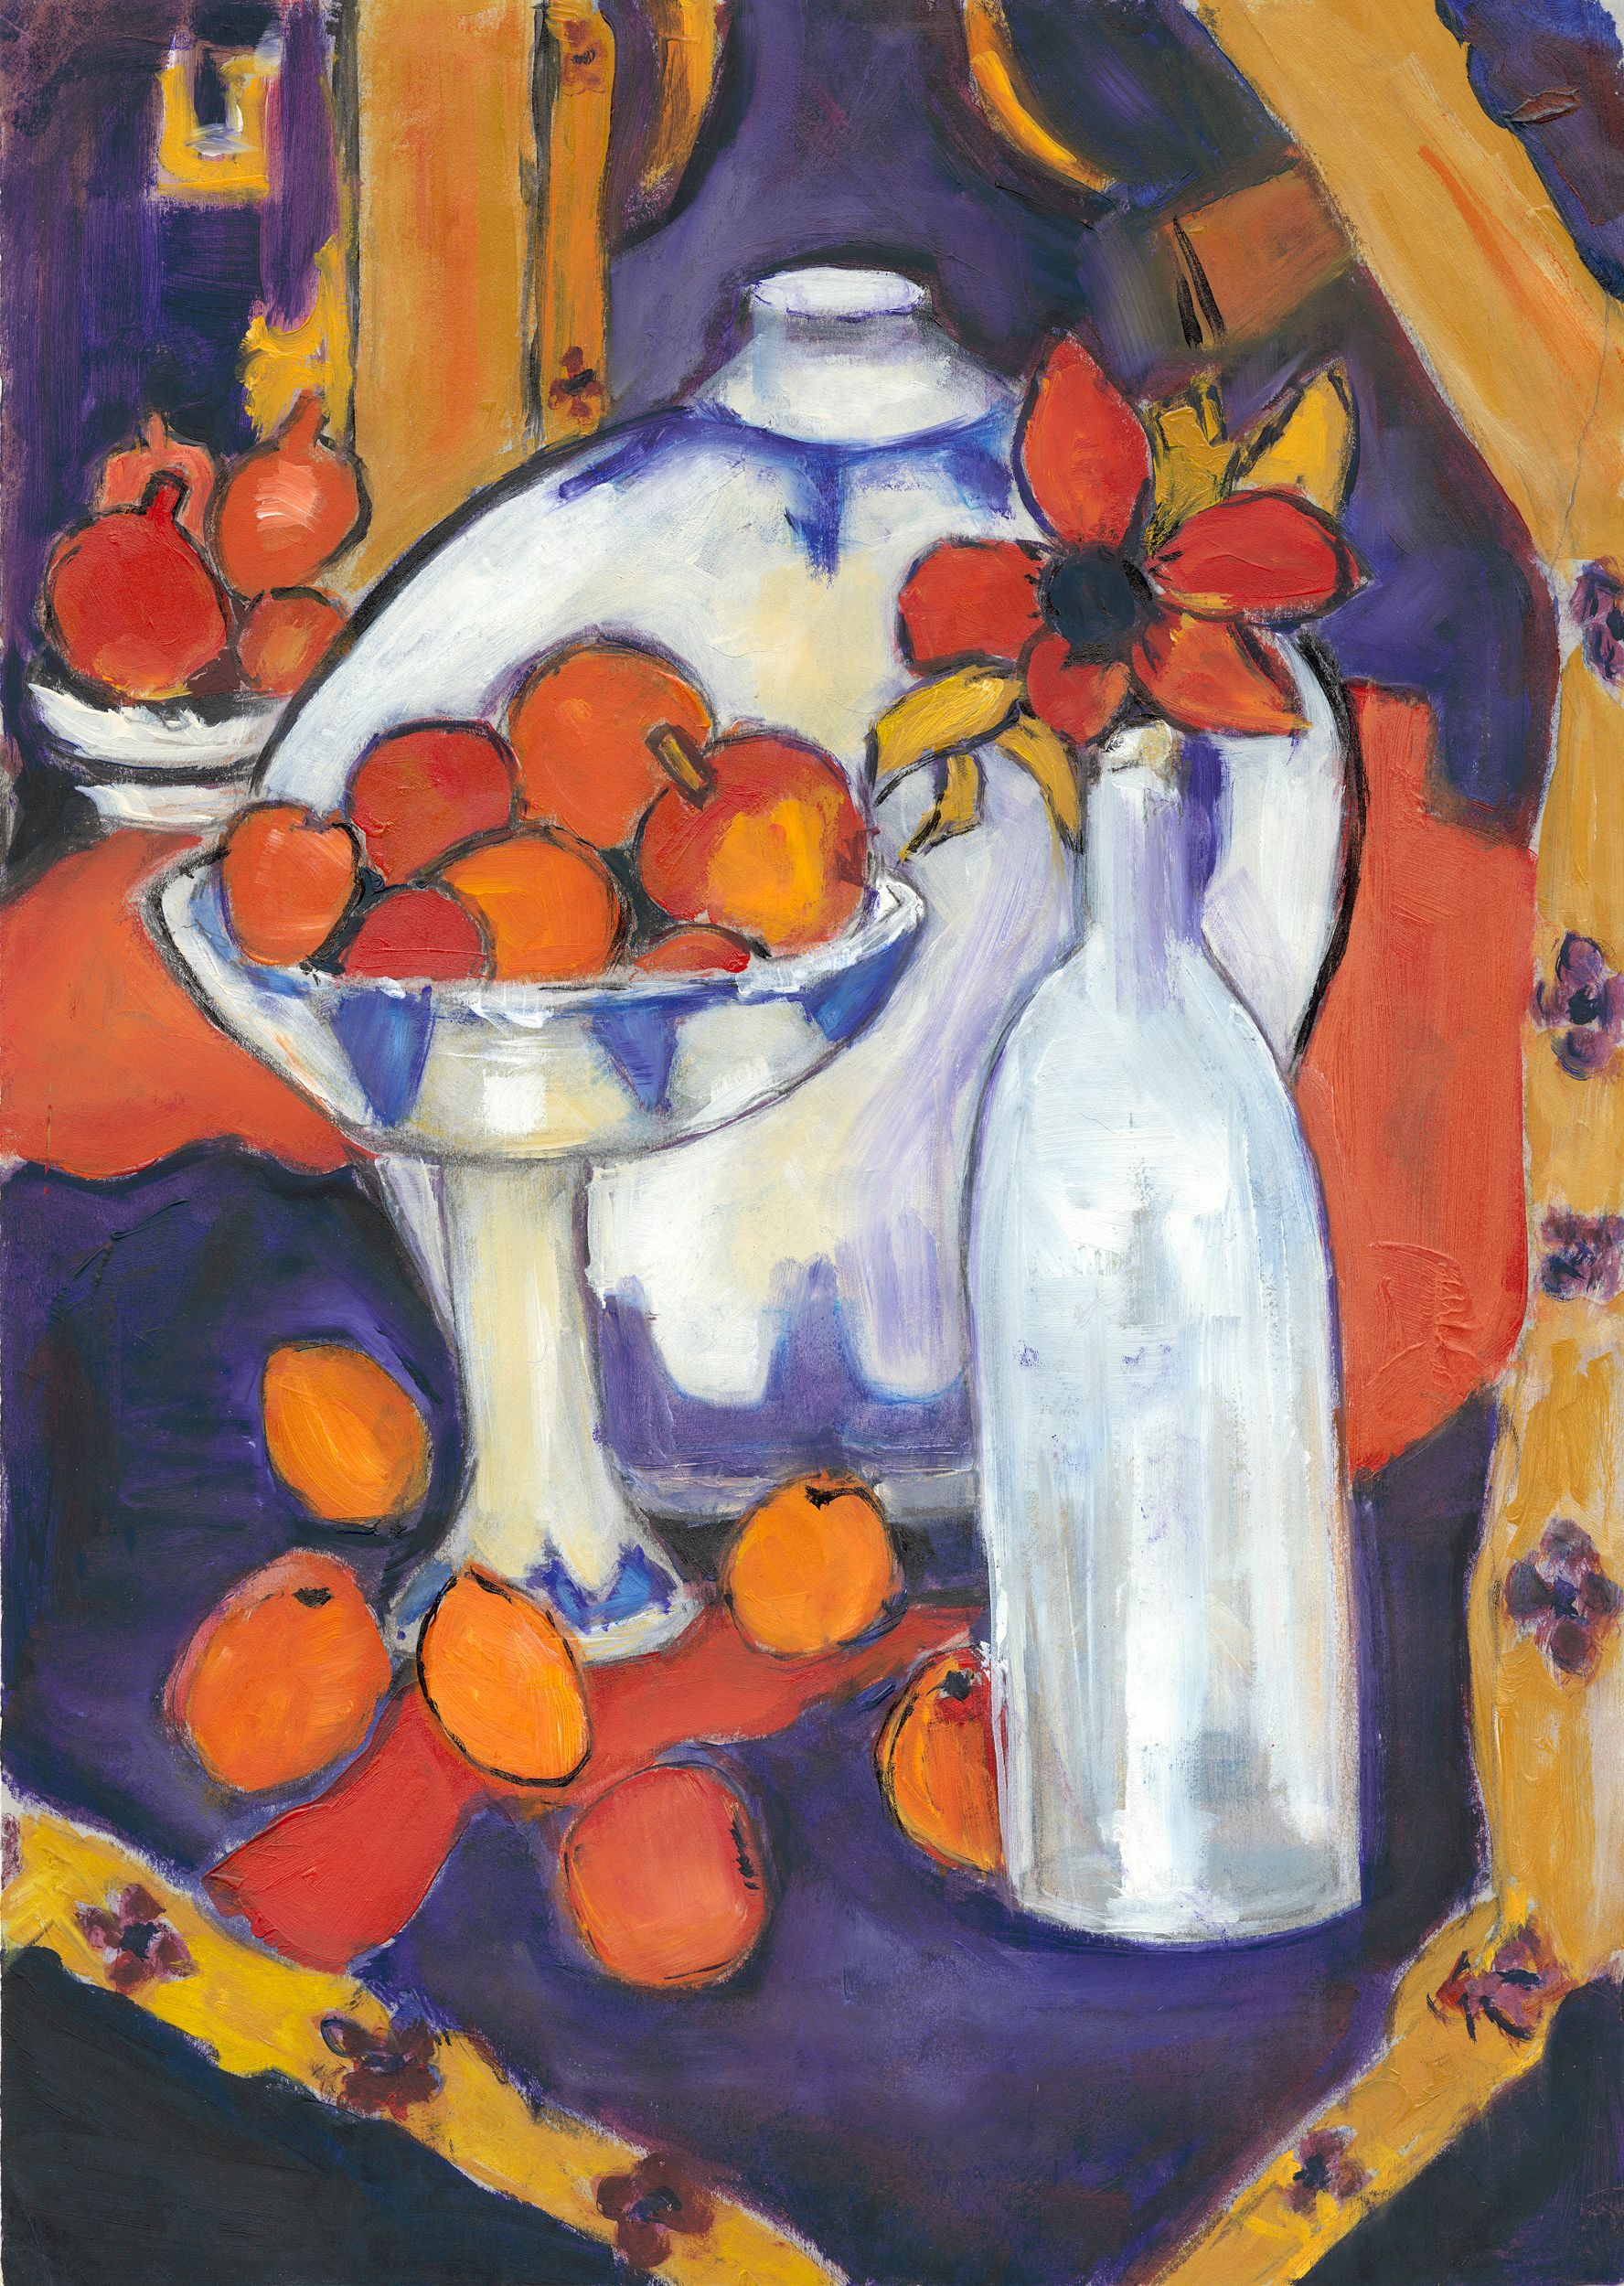 Bowl of Fruit after Matisse